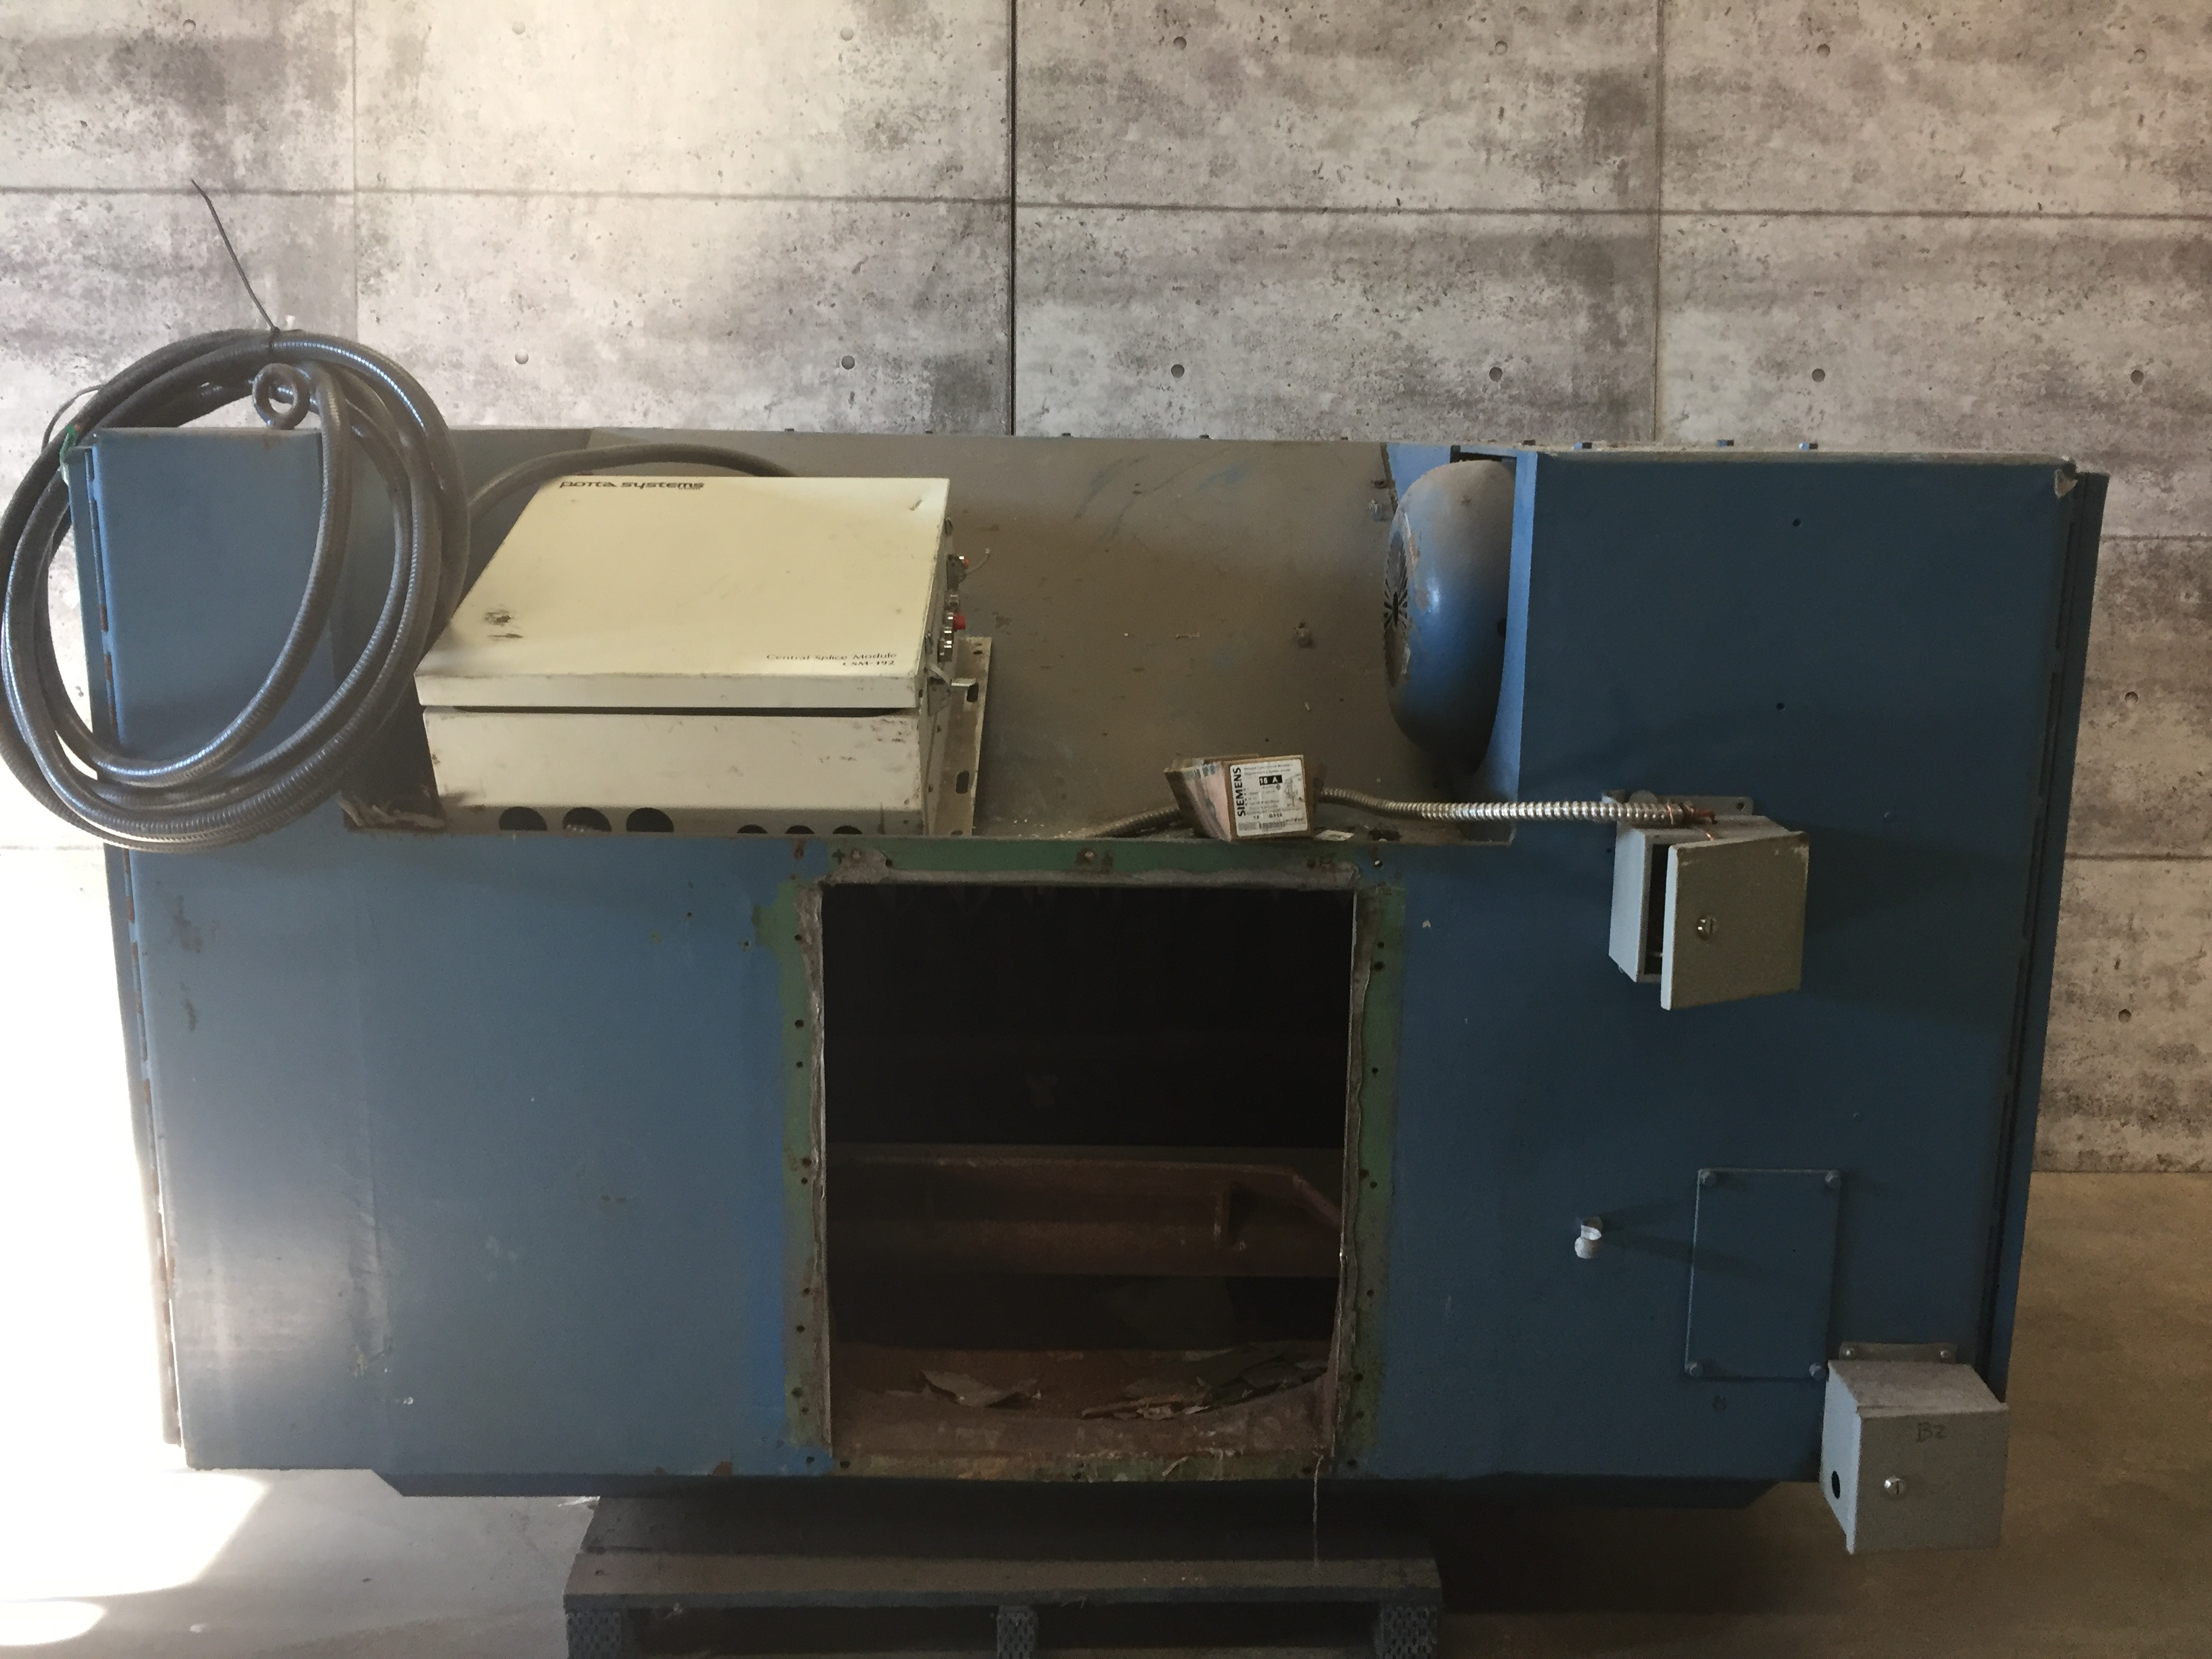 """BLOAPCO (MODEL #3C-2548-B) SHREDDER WITH 1"""" CORES AND CARDBOARD - SERIAL #73584 - Image 2 of 5"""